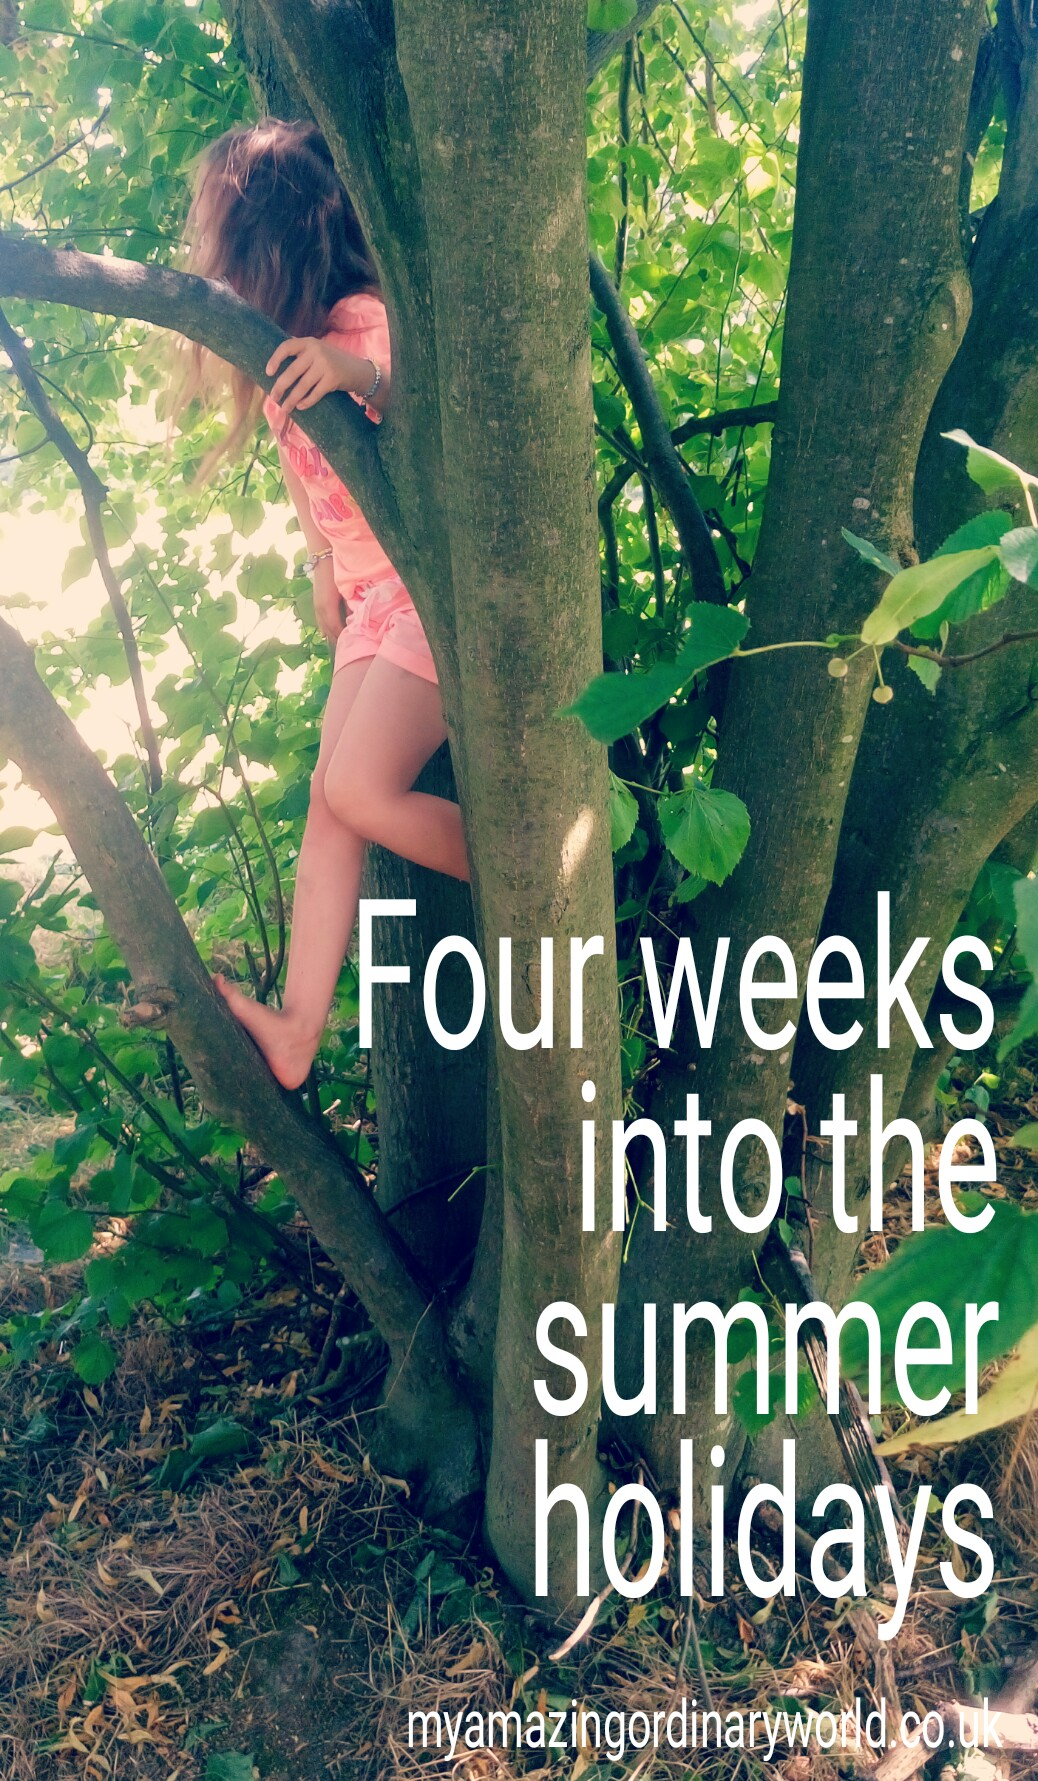 Four weeks into the summer holidays